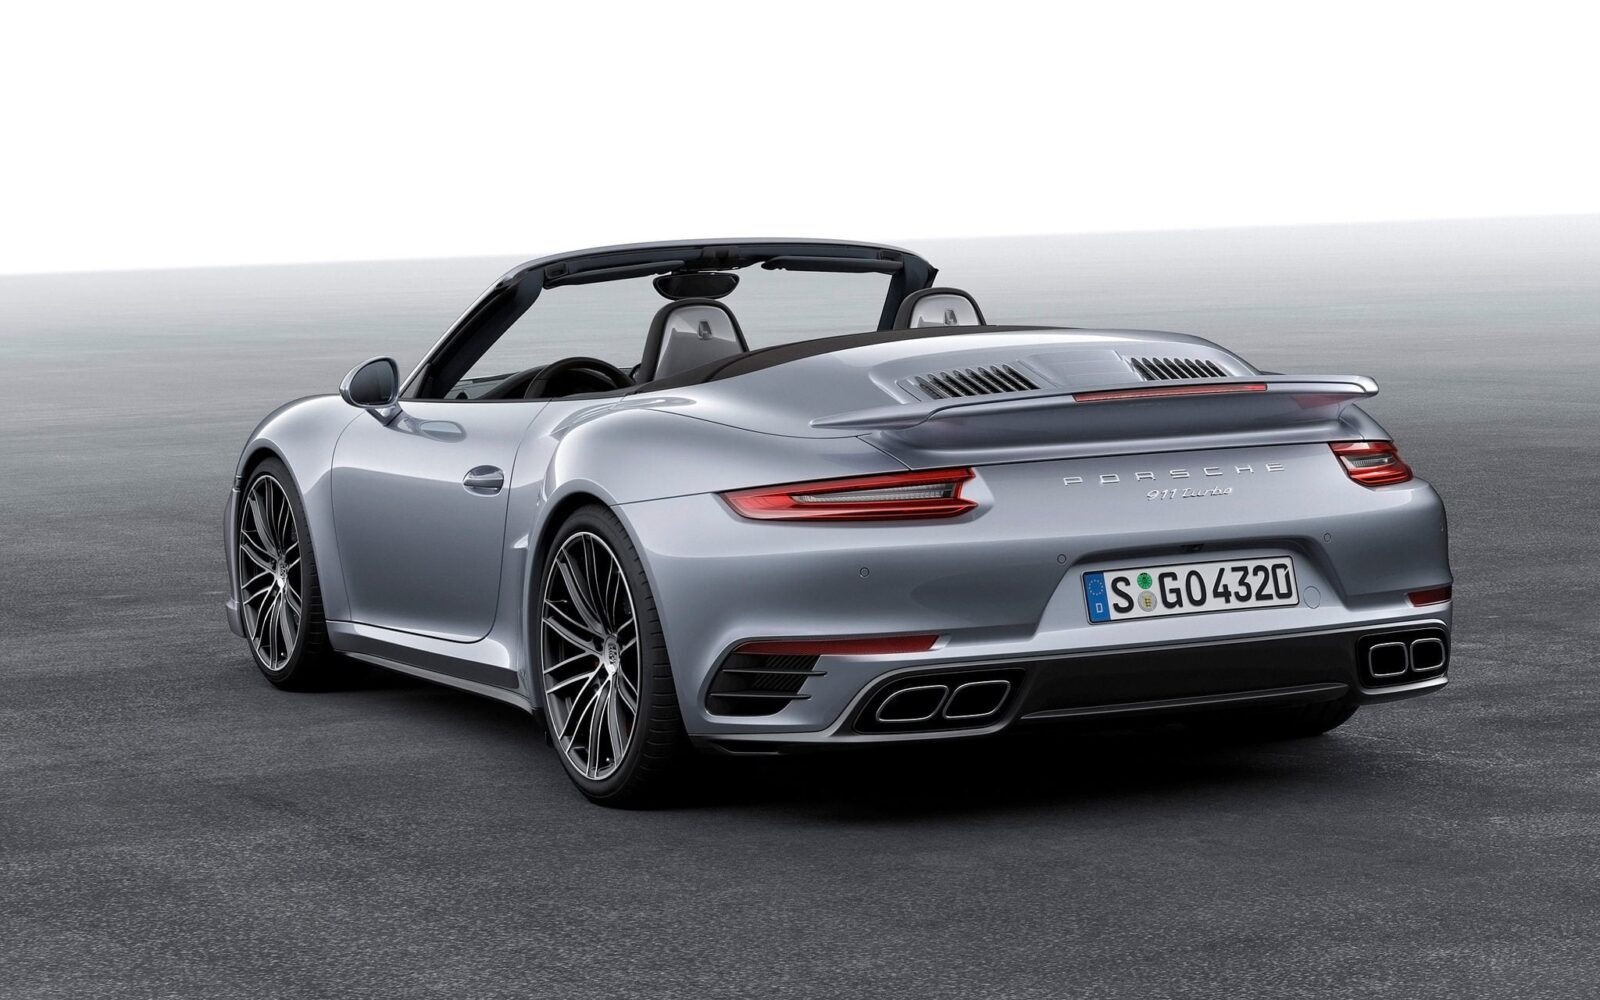 2016 porsche 911 turbo s cabriolet wallpapers hd. Black Bedroom Furniture Sets. Home Design Ideas